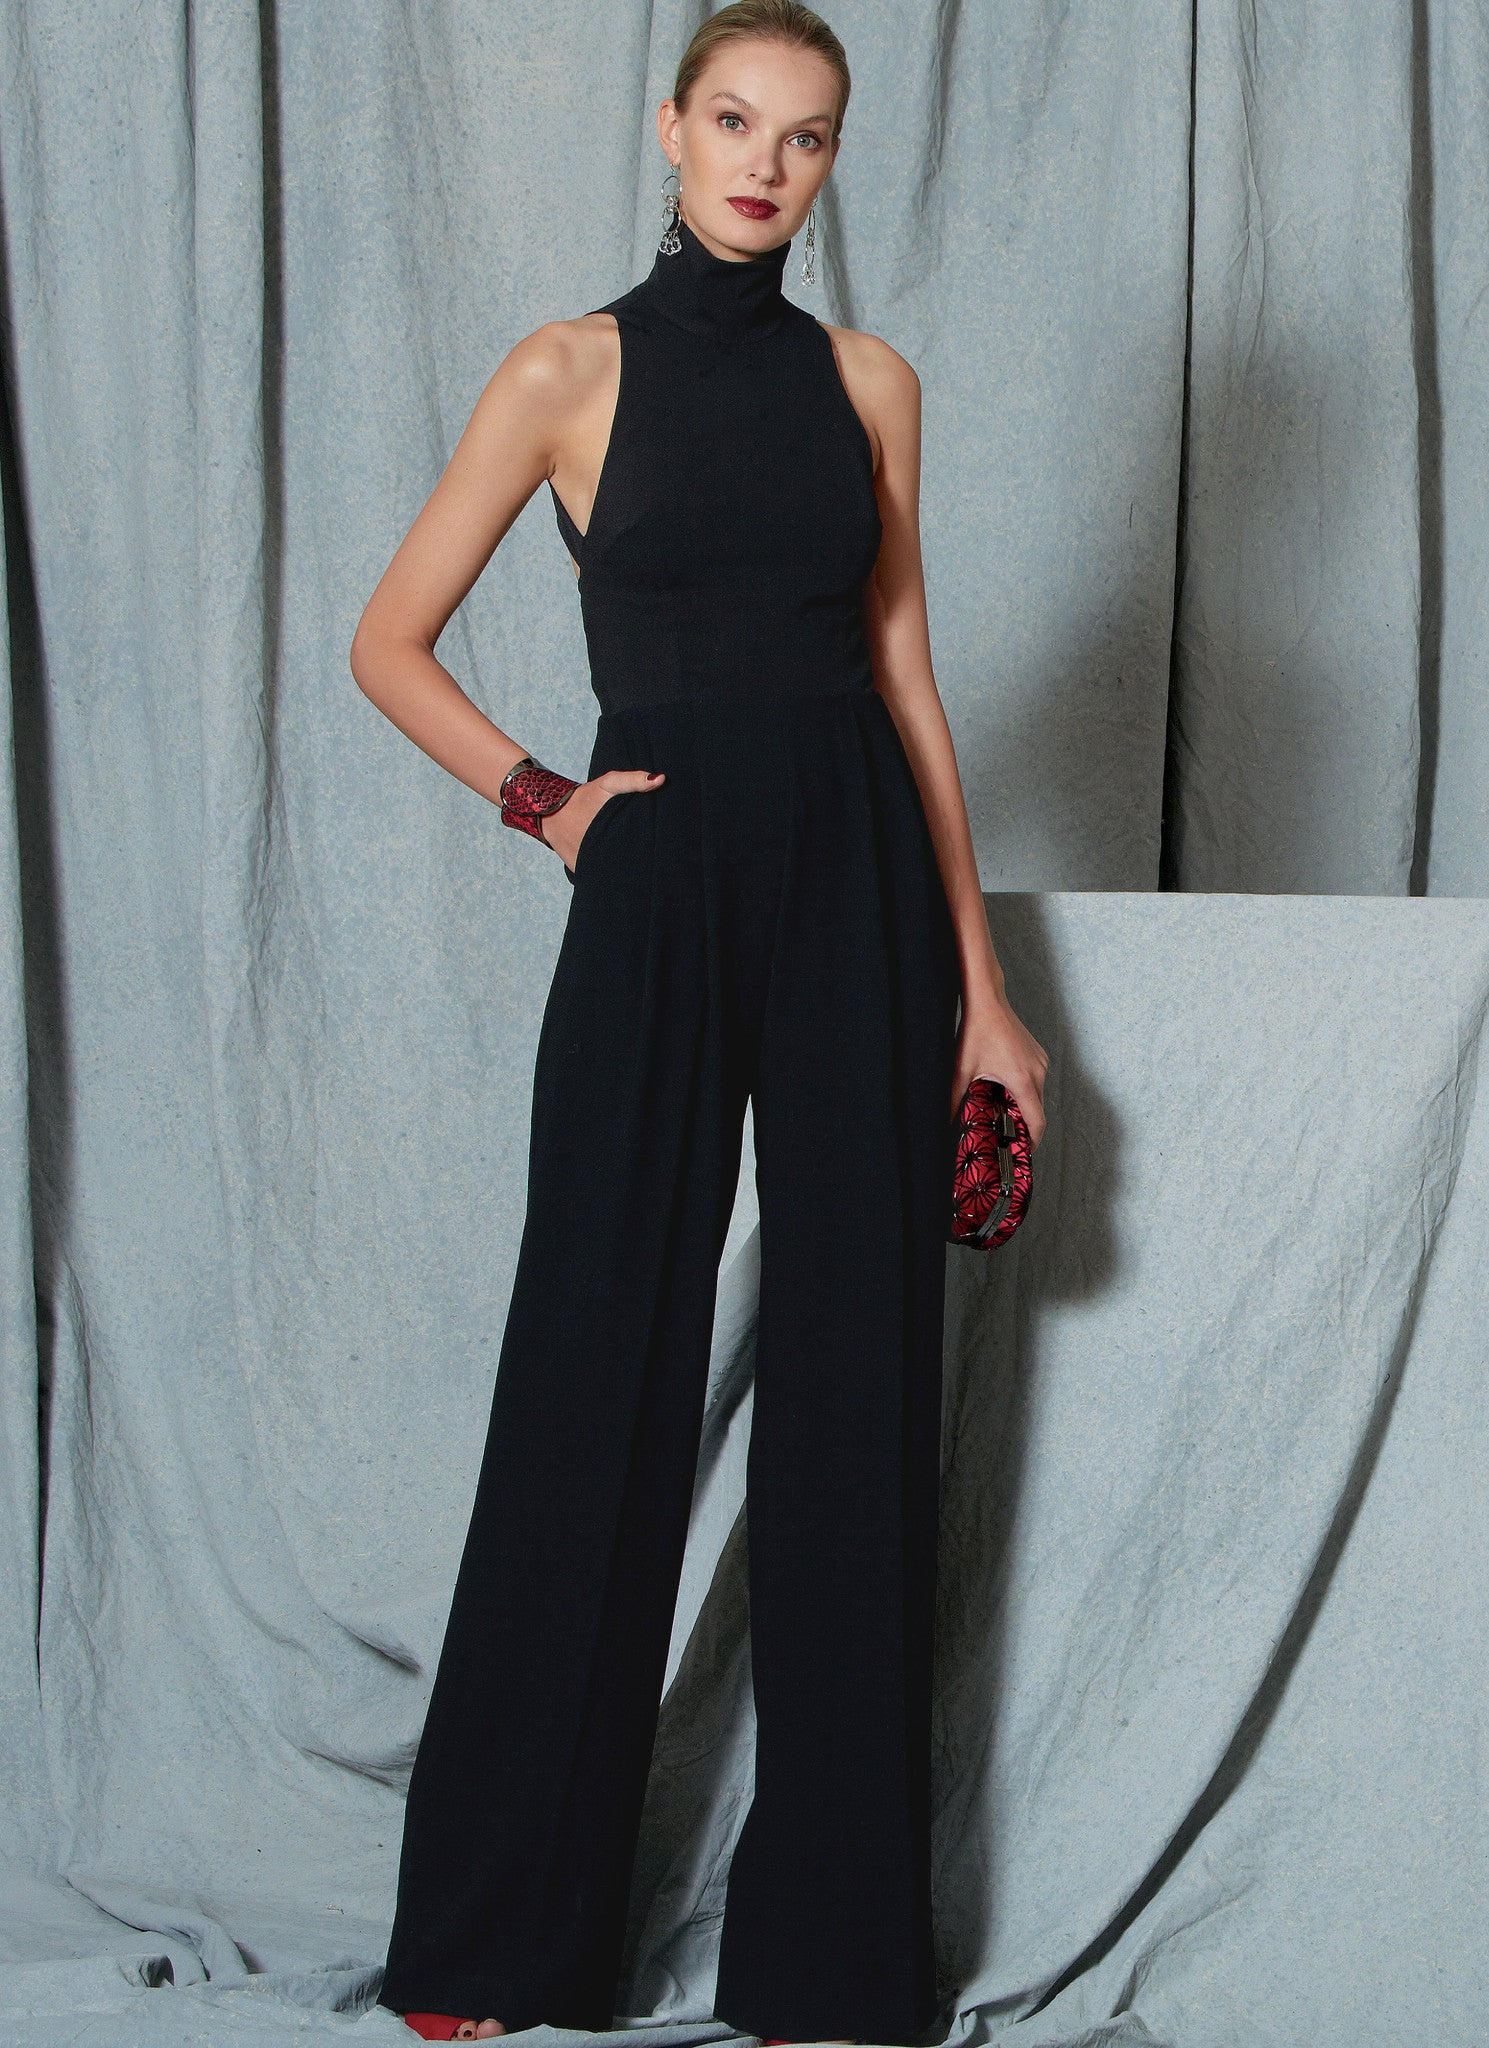 V1524 Misses' Open-Back, Belted Jumpsuit